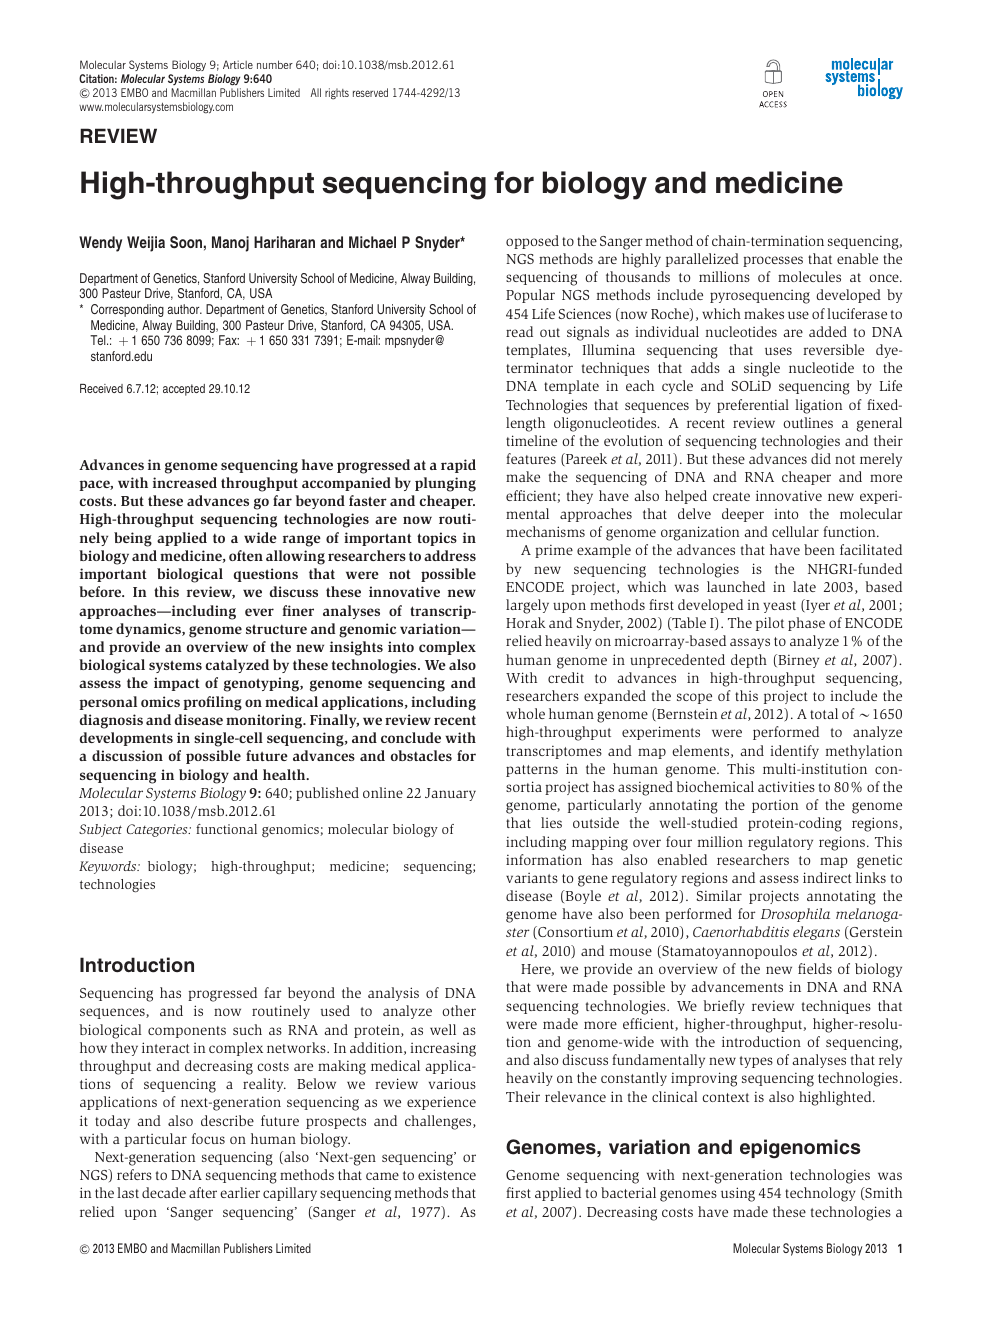 High-throughput sequencing for biology and medicine – topic of